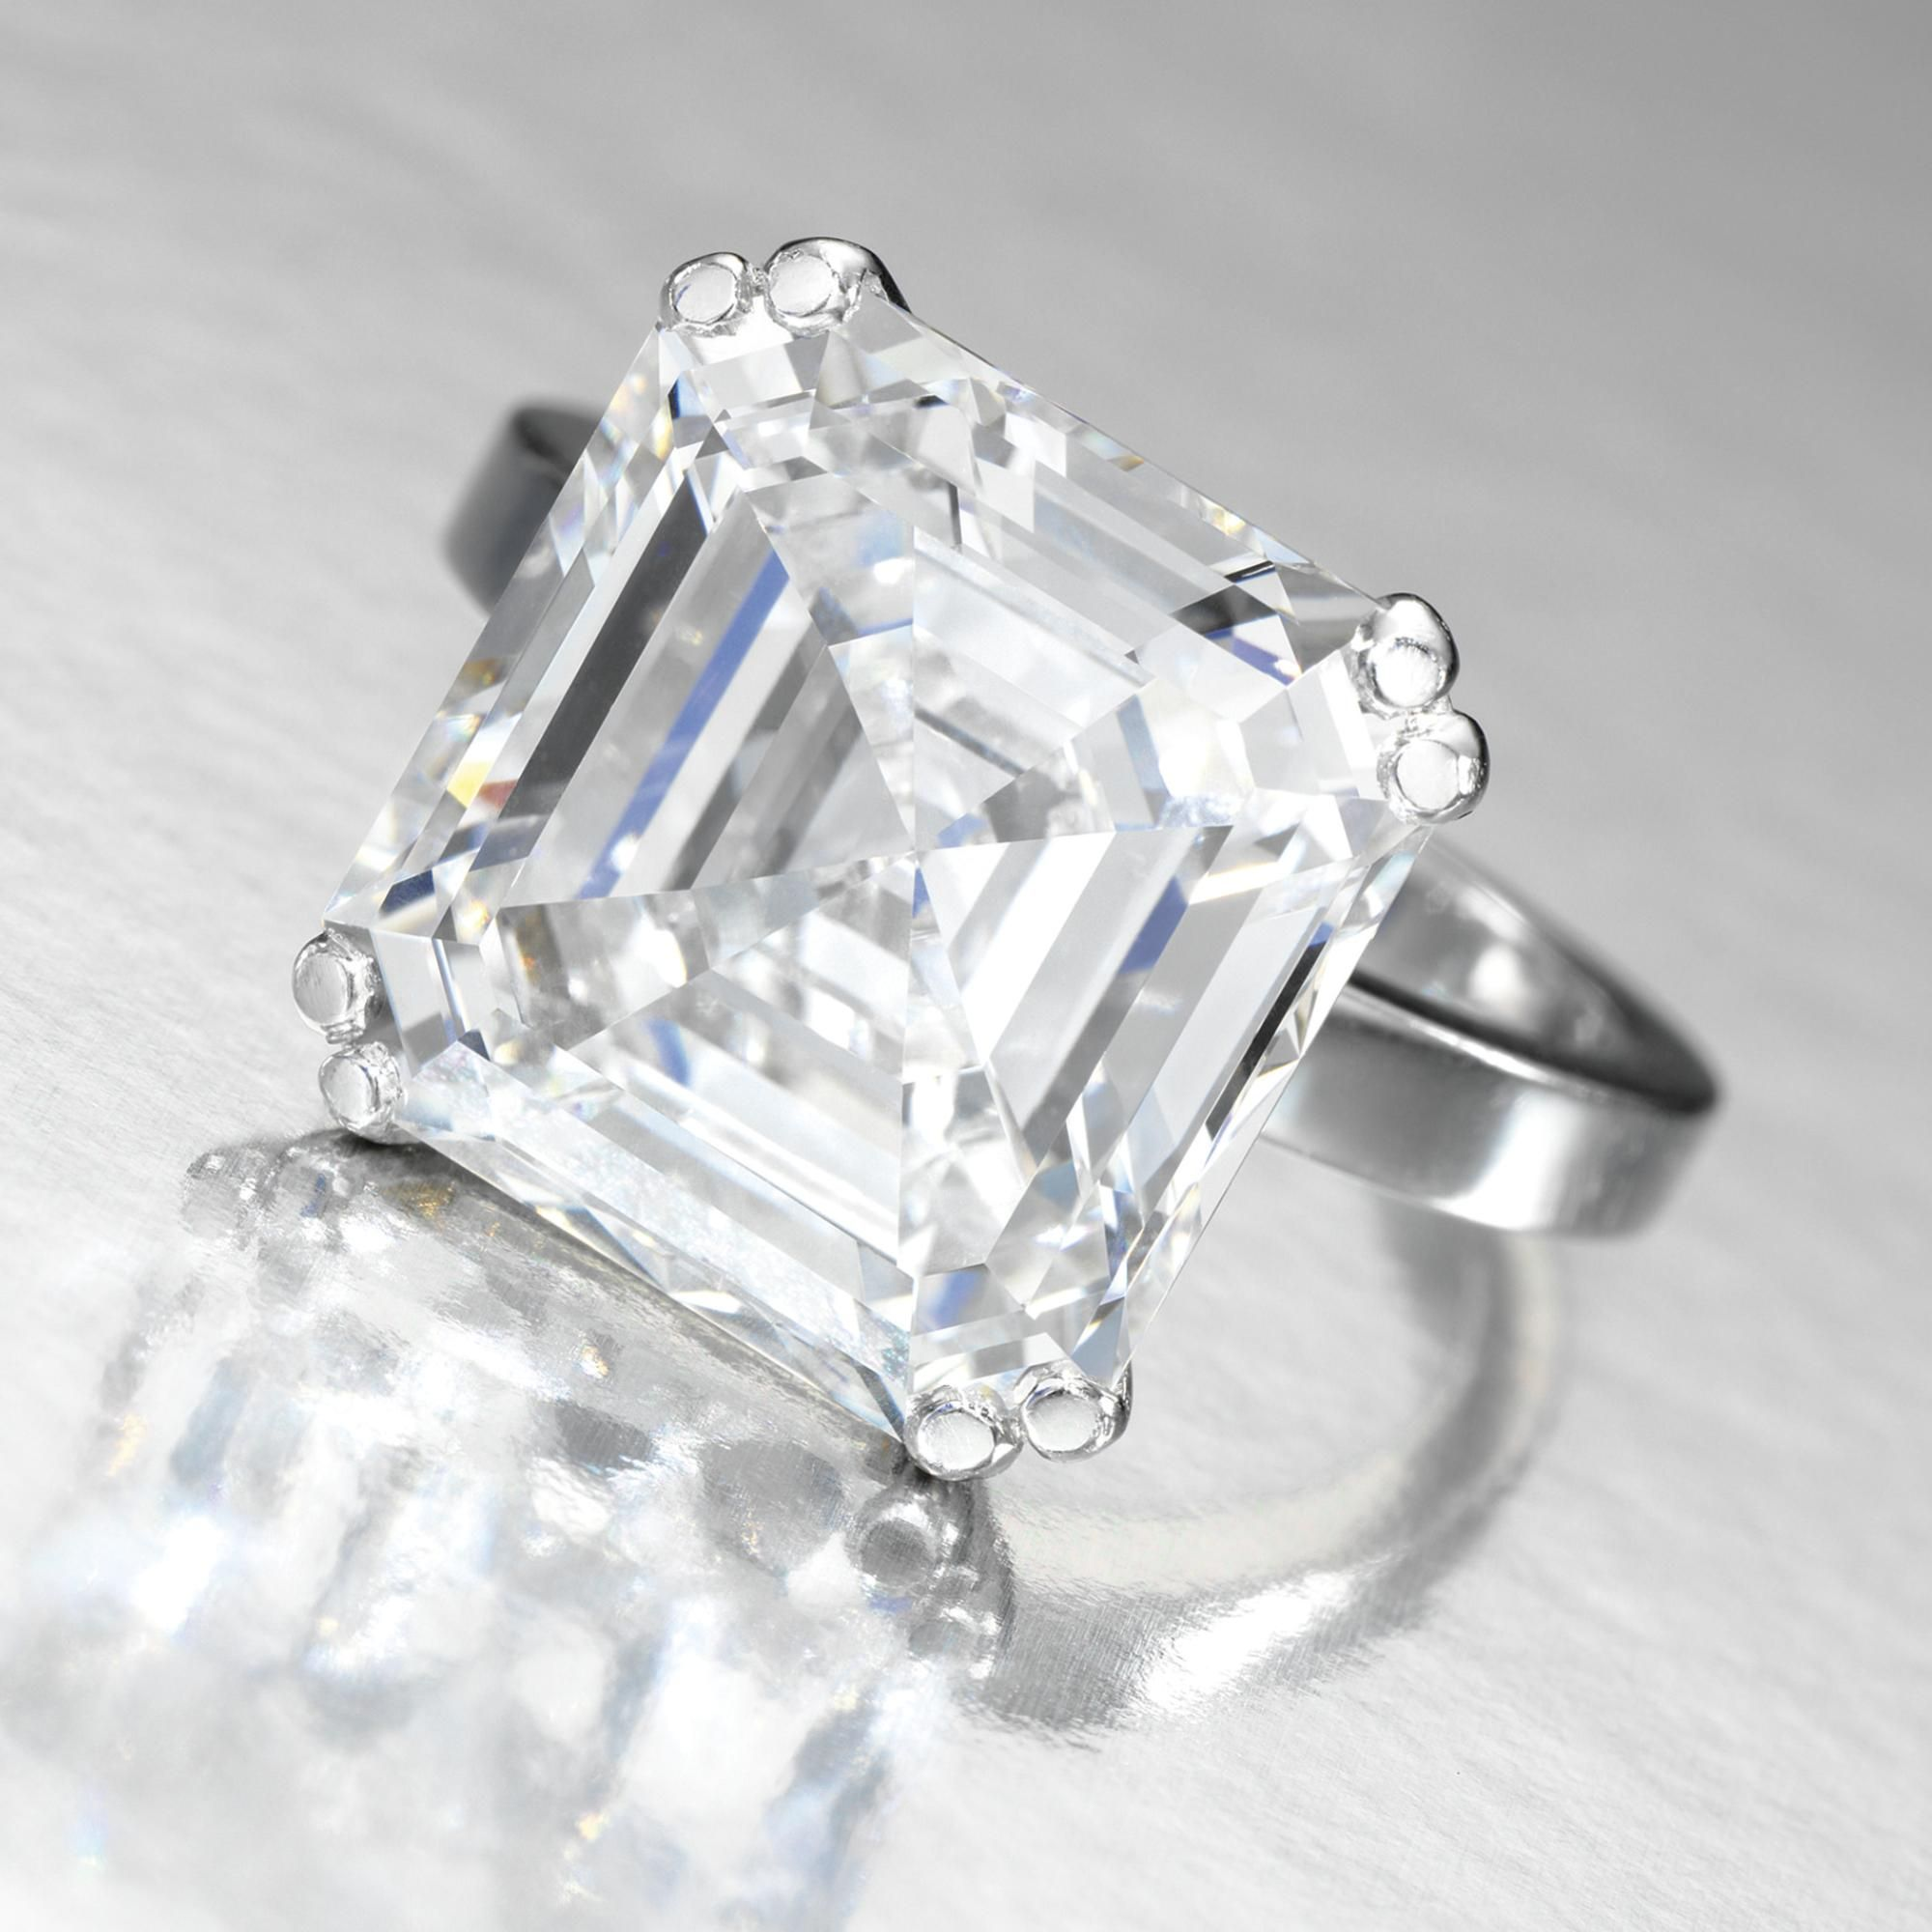 single estimated flawless stock value ring asscher internally stone photo diamond cut